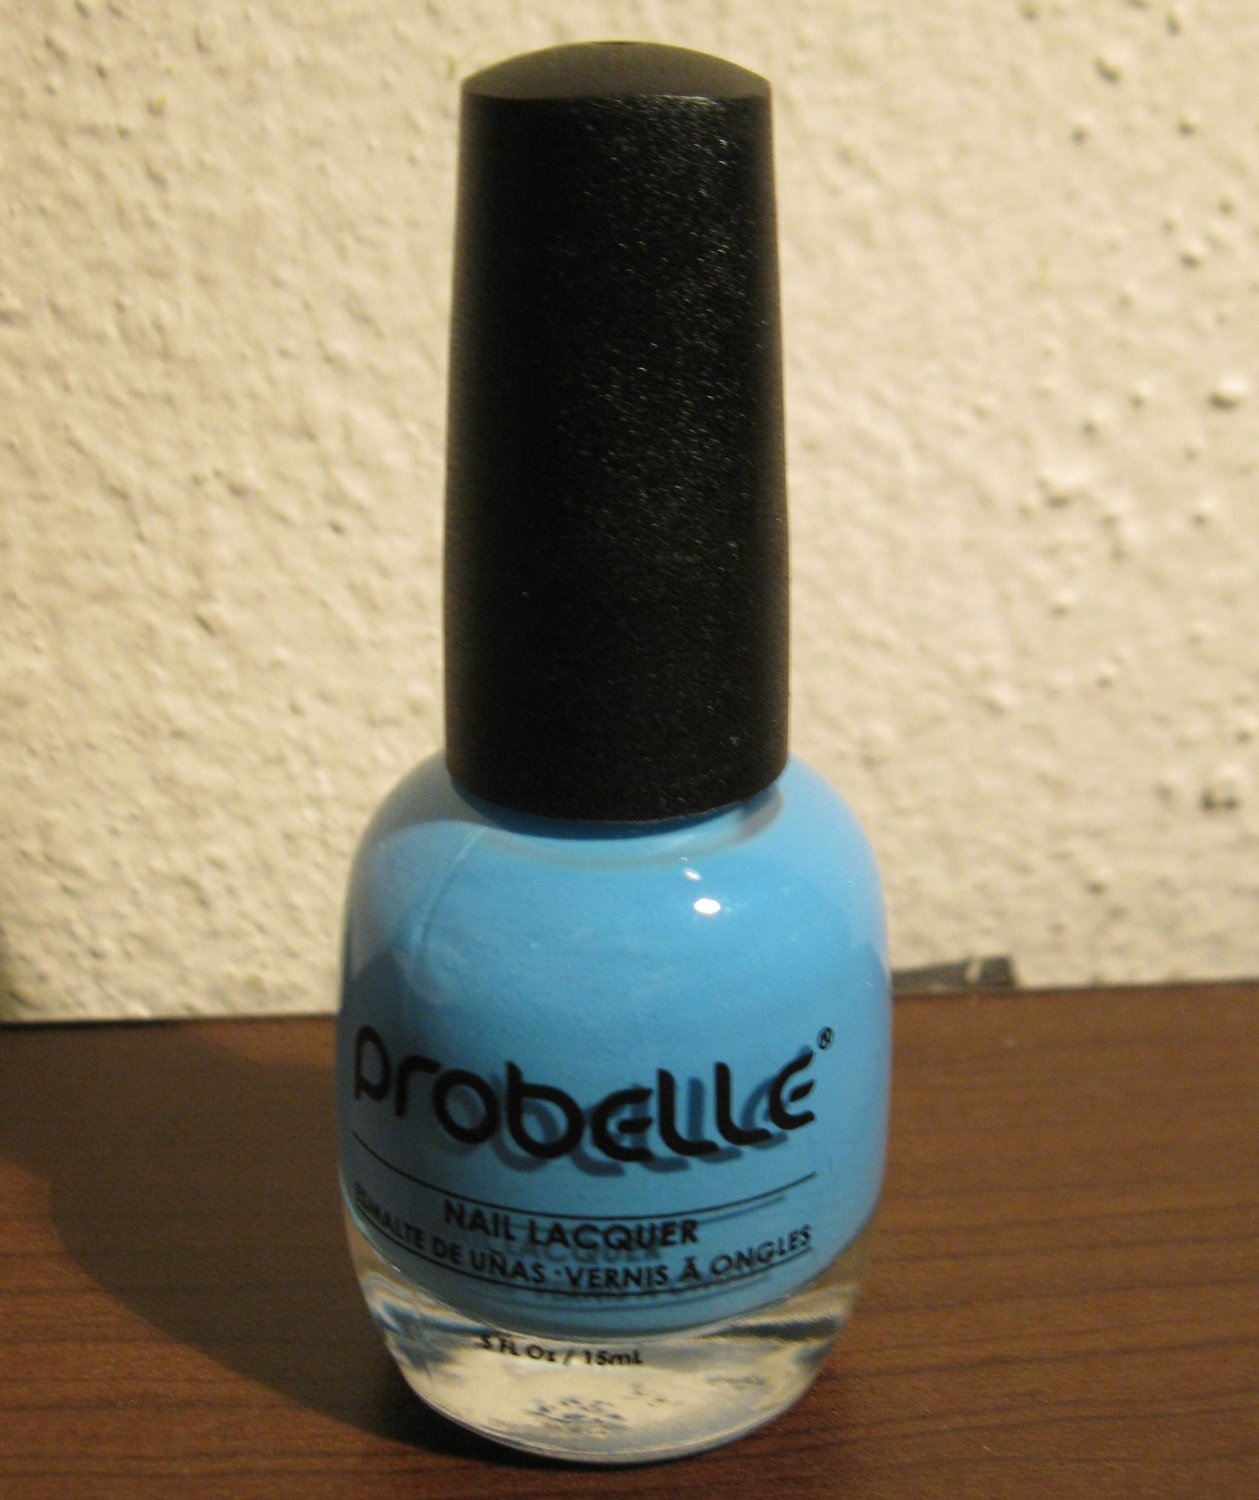 Probelle Nail Lacquer Polish Shade 0502 INTO THE BLUE .5 oz/15 ml New! #T1114